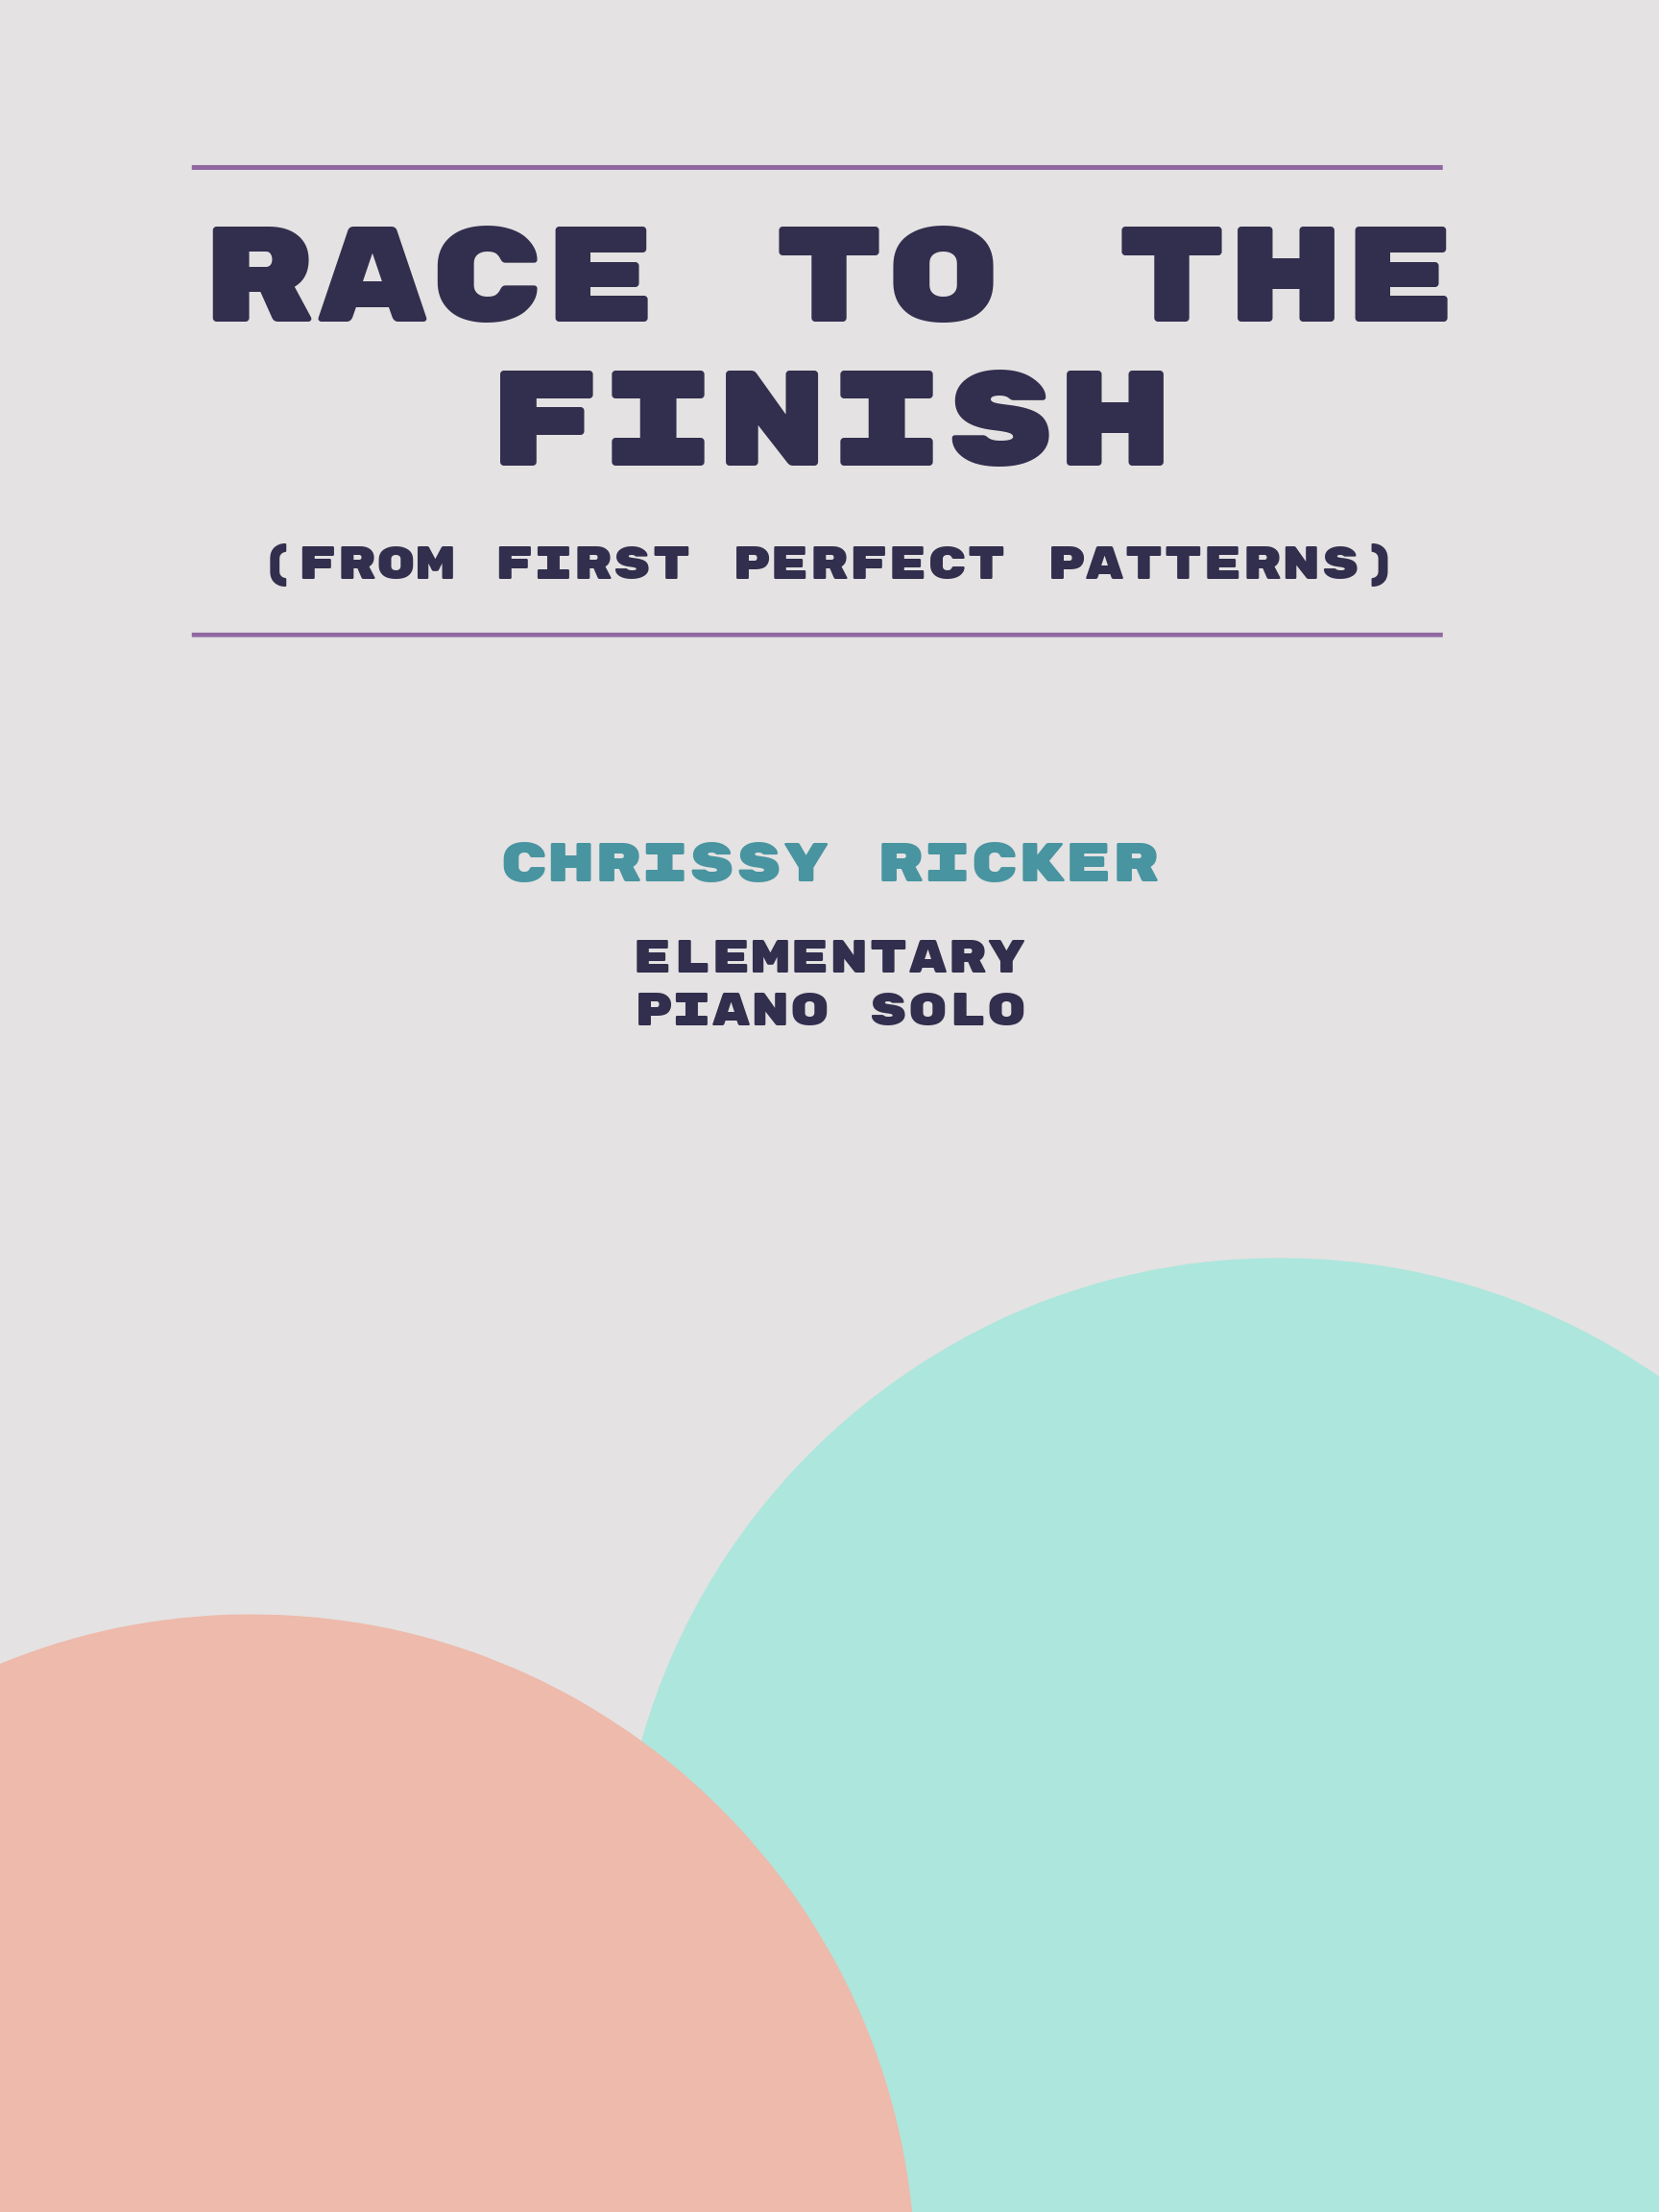 Race to the Finish by Chrissy Ricker